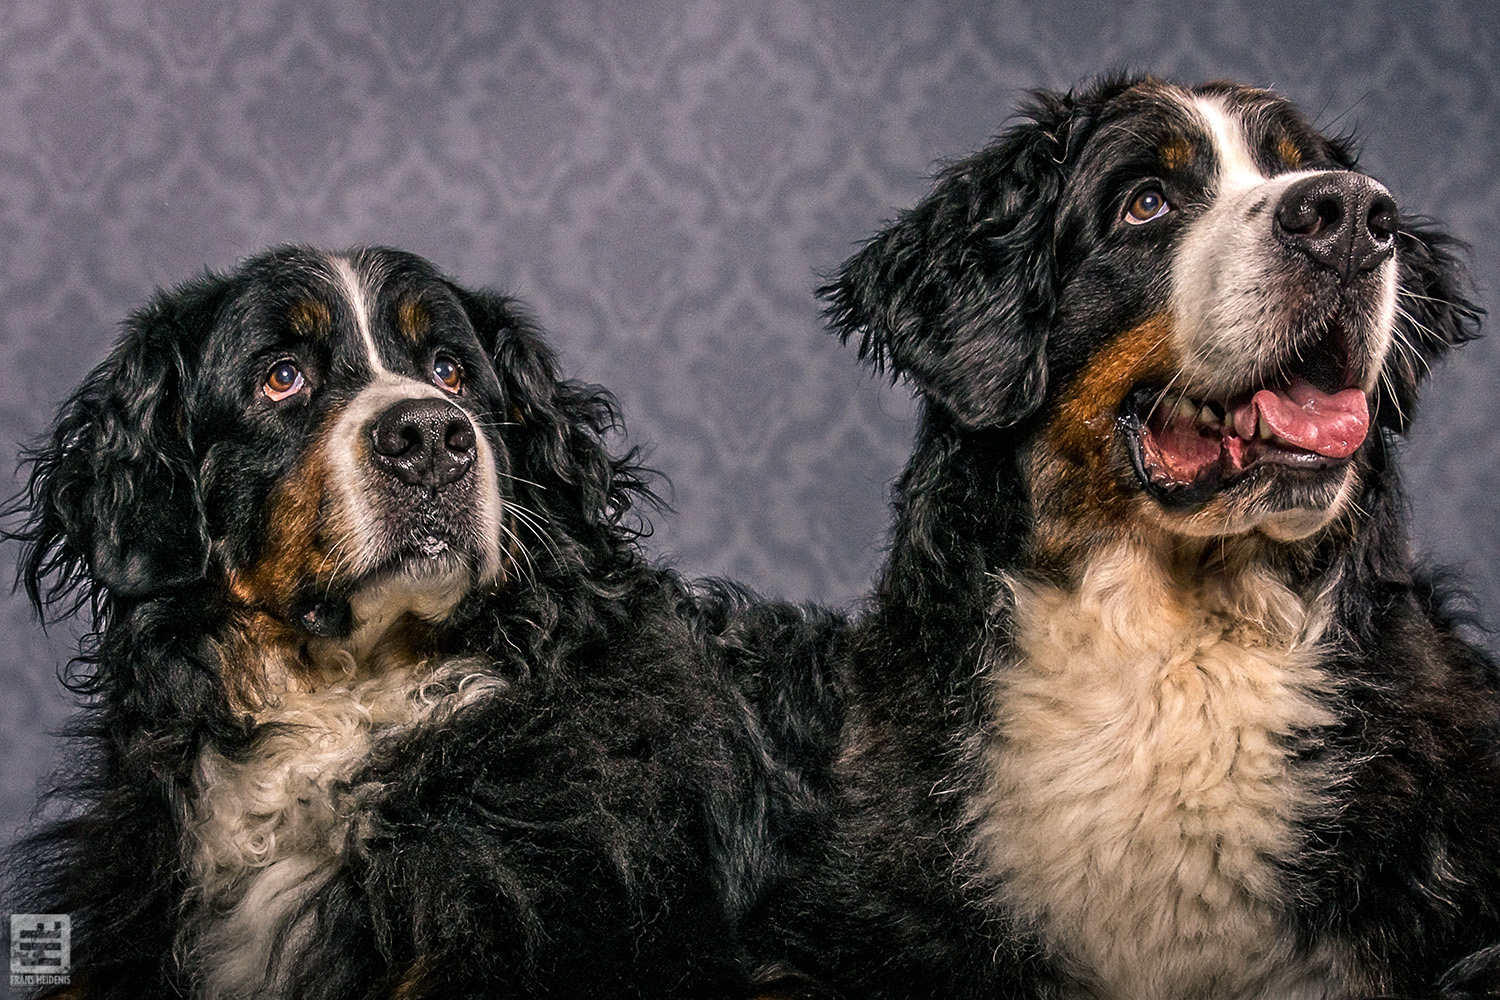 Royal Dogs - Ziva & Hennes